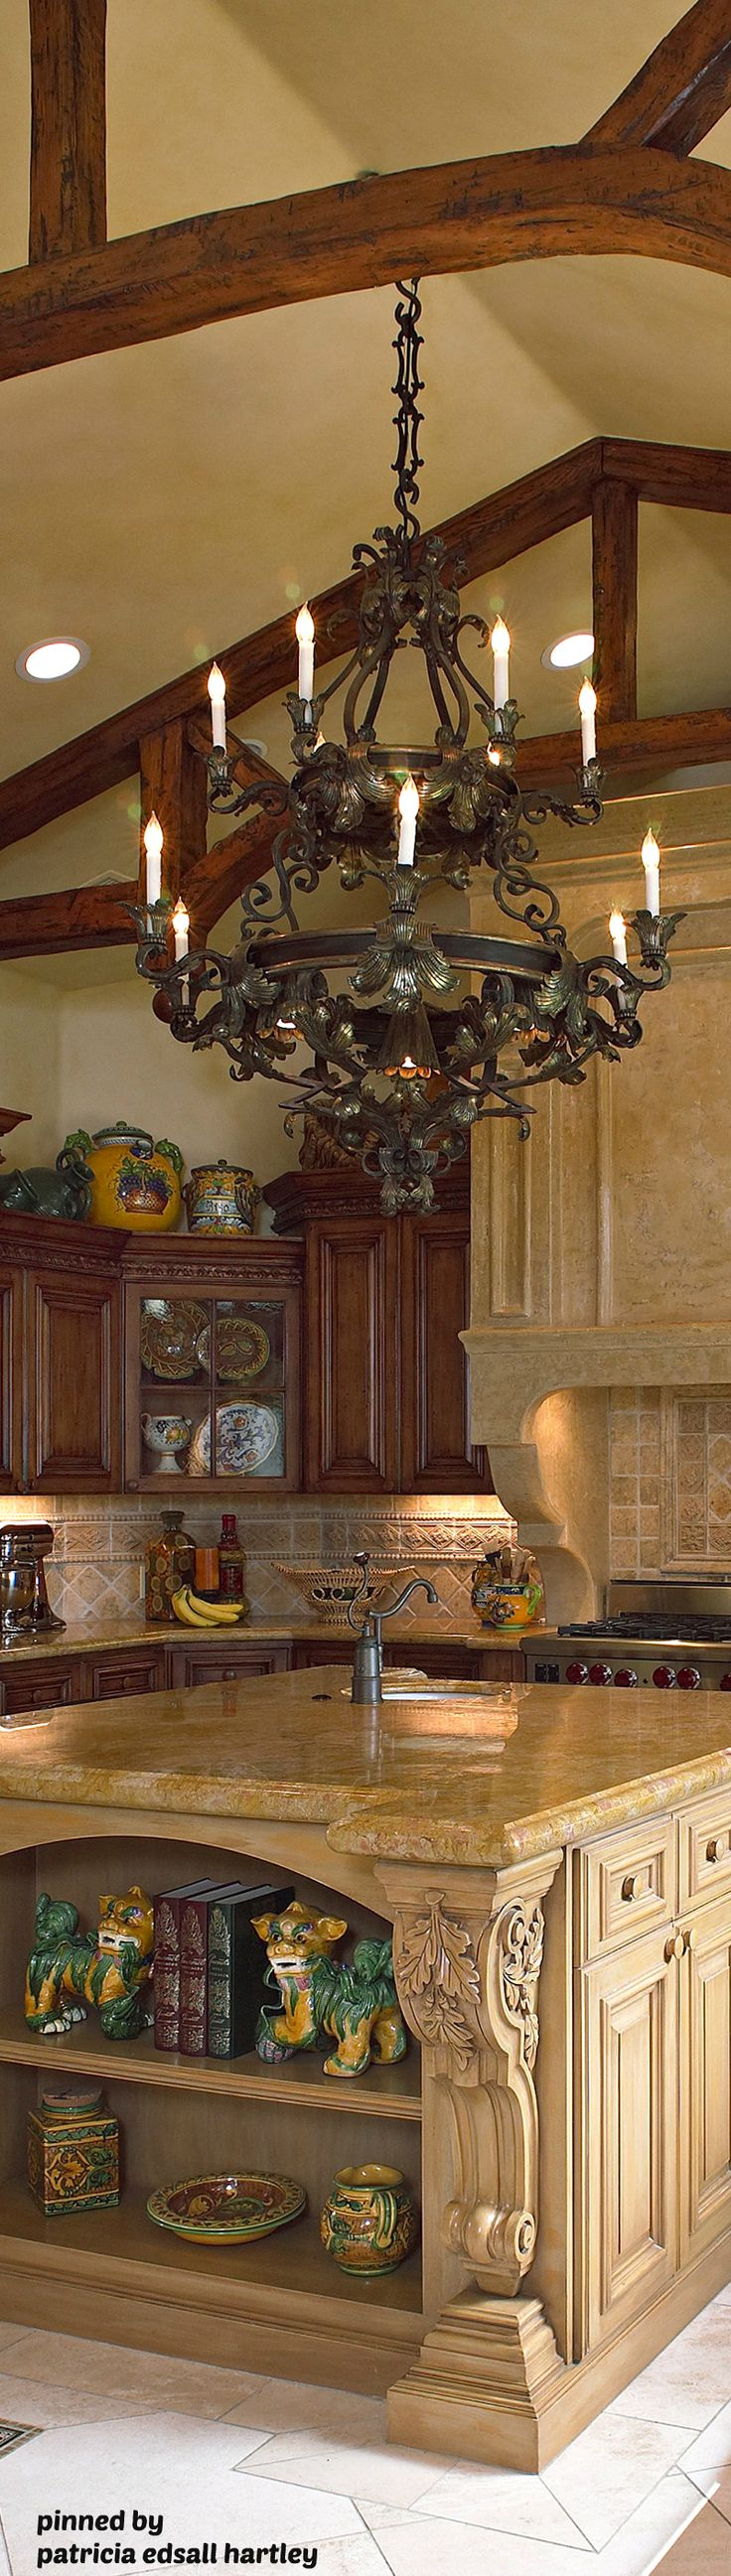 Tuscan Kitchens 17 Best Ideas About Tuscan Kitchens On Pinterest Mediterranean